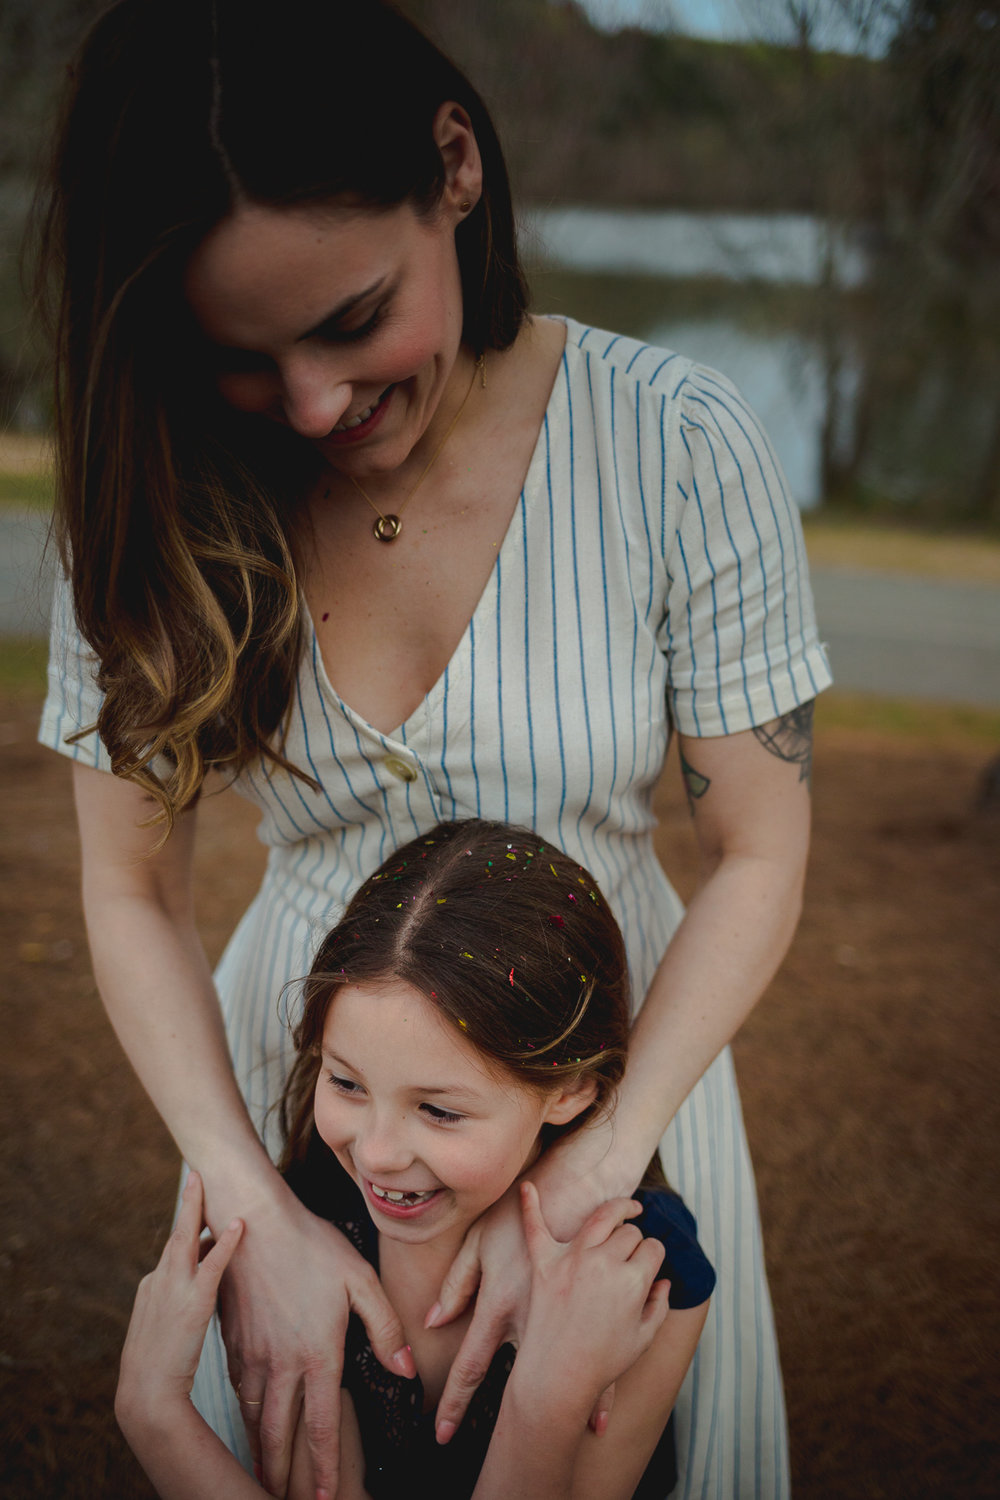 mother daughter session, mother daughter photography, charlotte north carolina photographer, family photographer north carolina, wedding photographer north carolina, family photo session